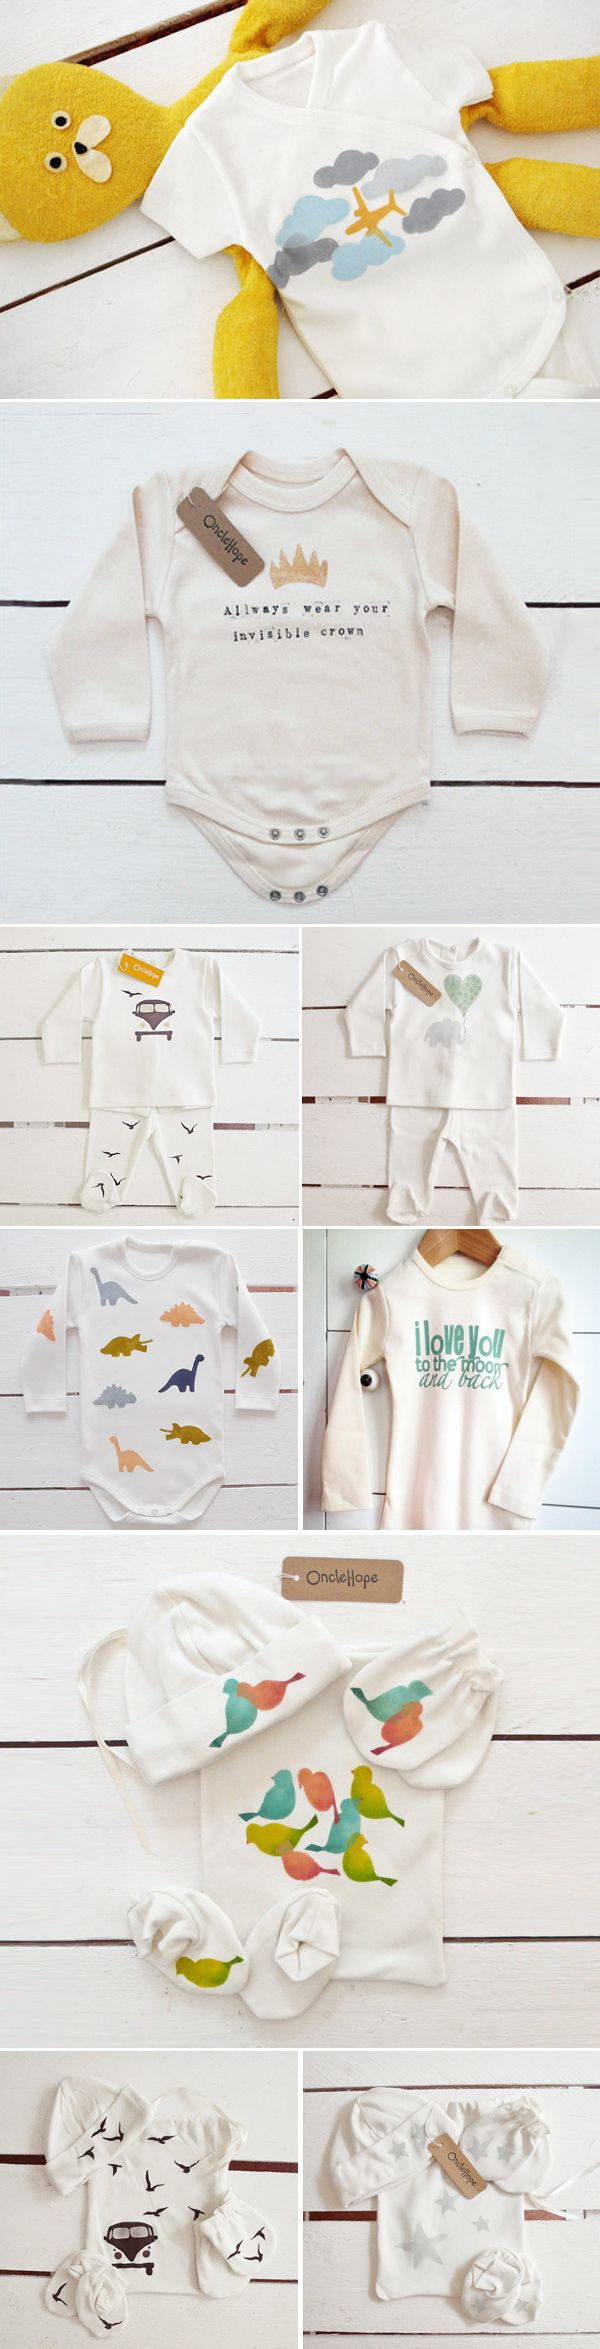 Unisex Baby Clothing: I love the invisible crown one! I bet we could make these with some stamps and t-shirt paint!